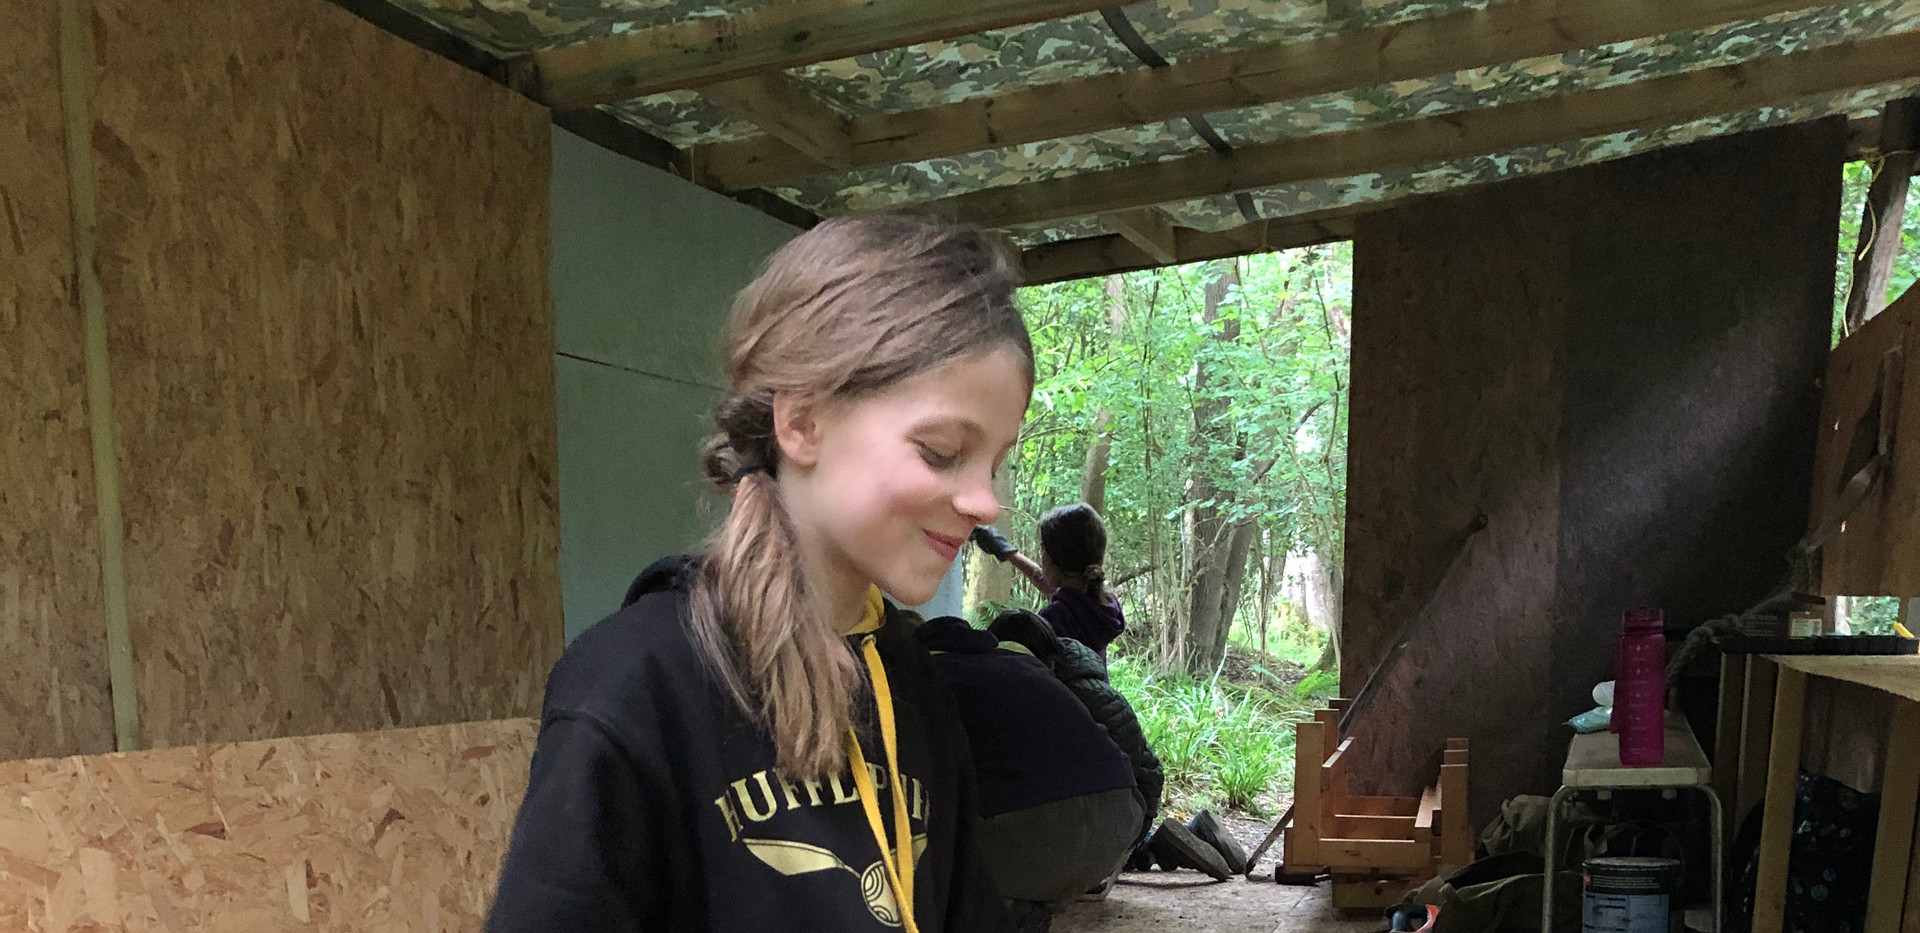 Sawing the sides of the nature hide.